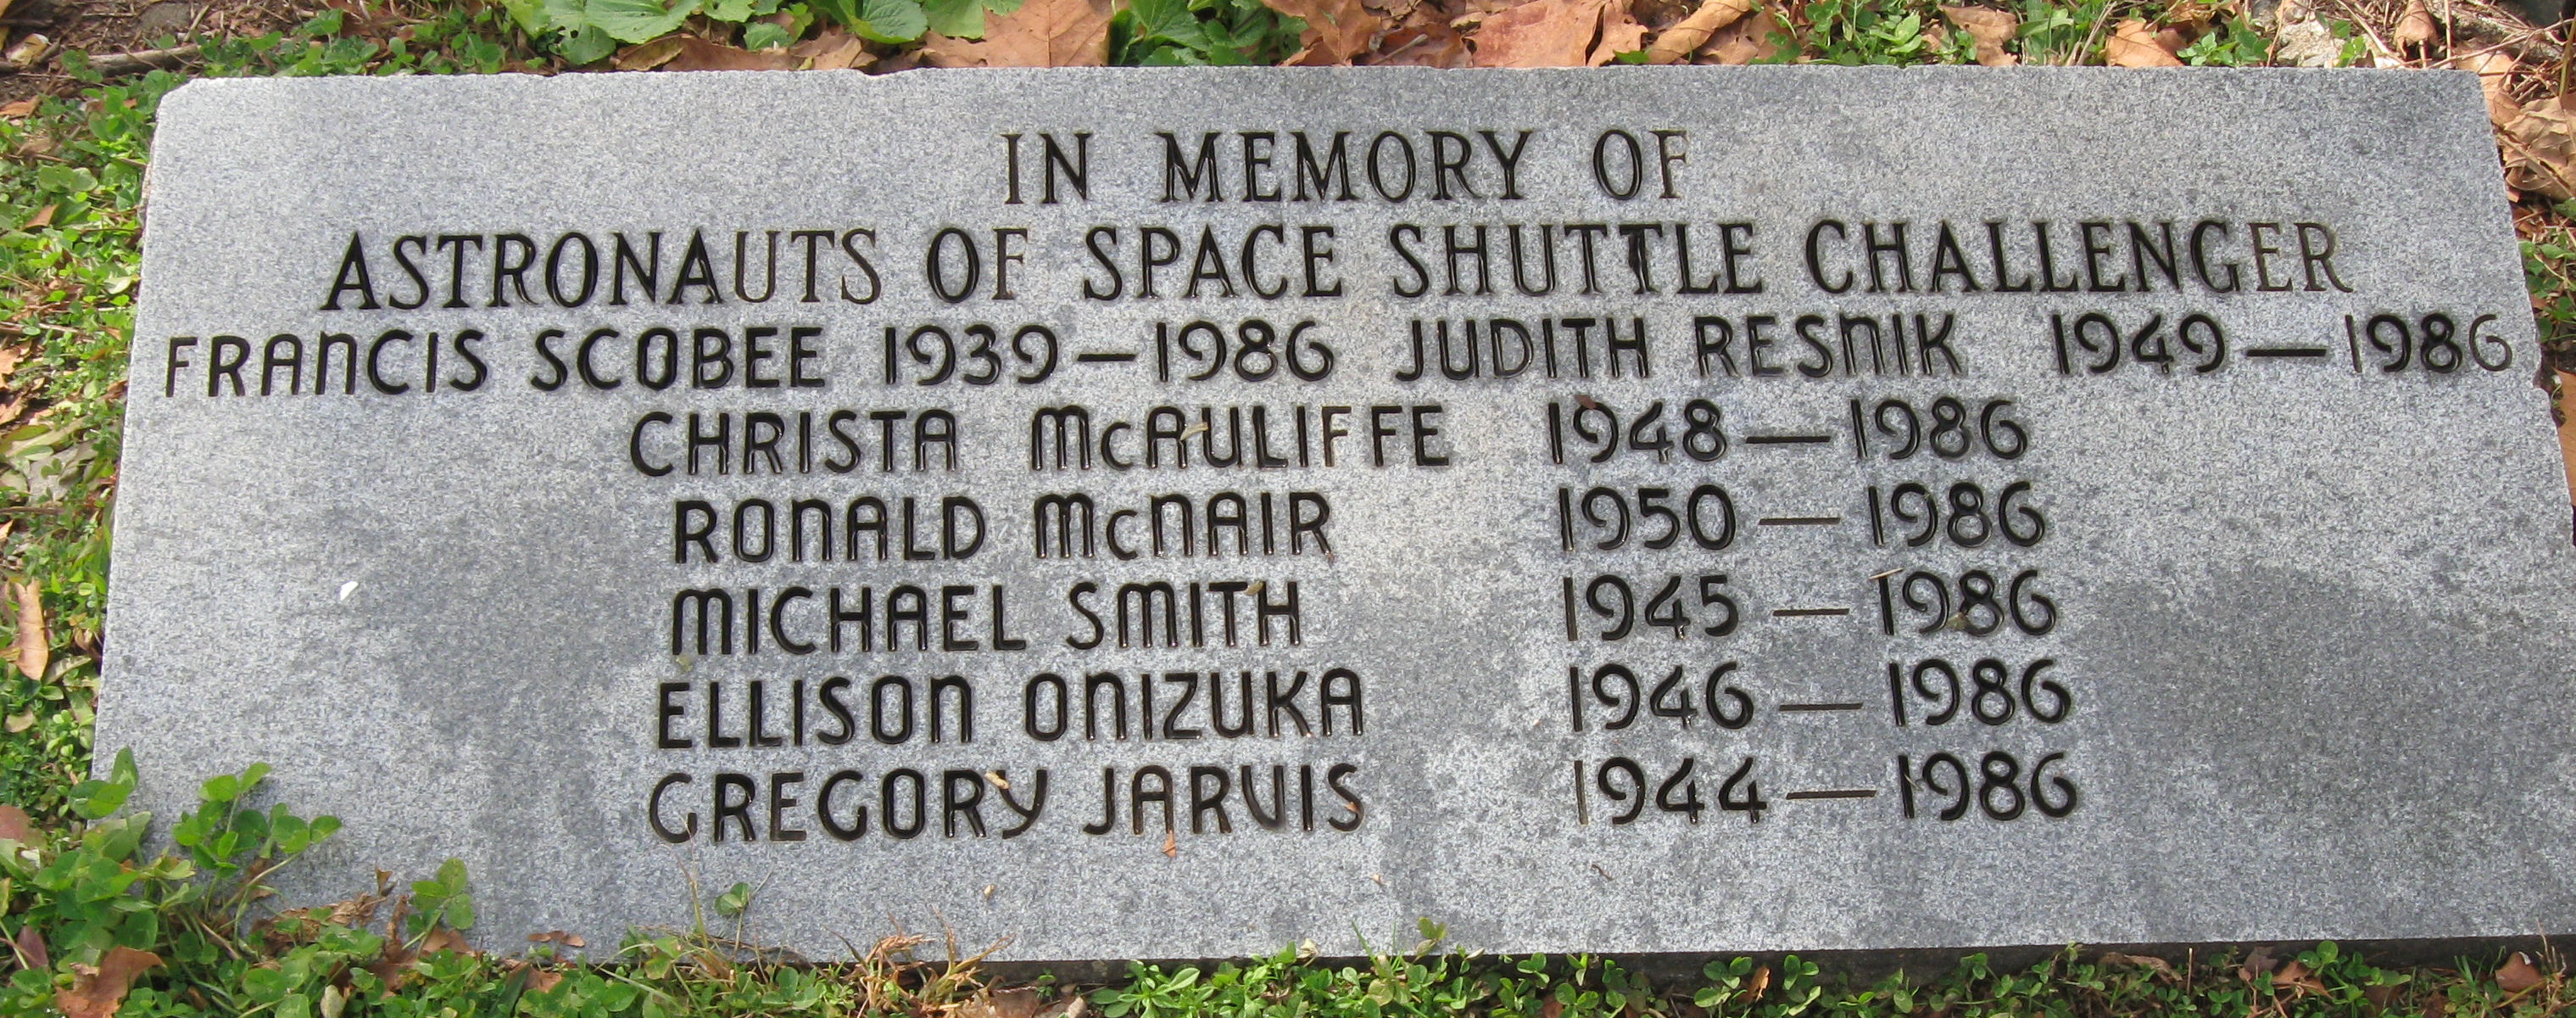 space shuttle challenger funeral - photo #24